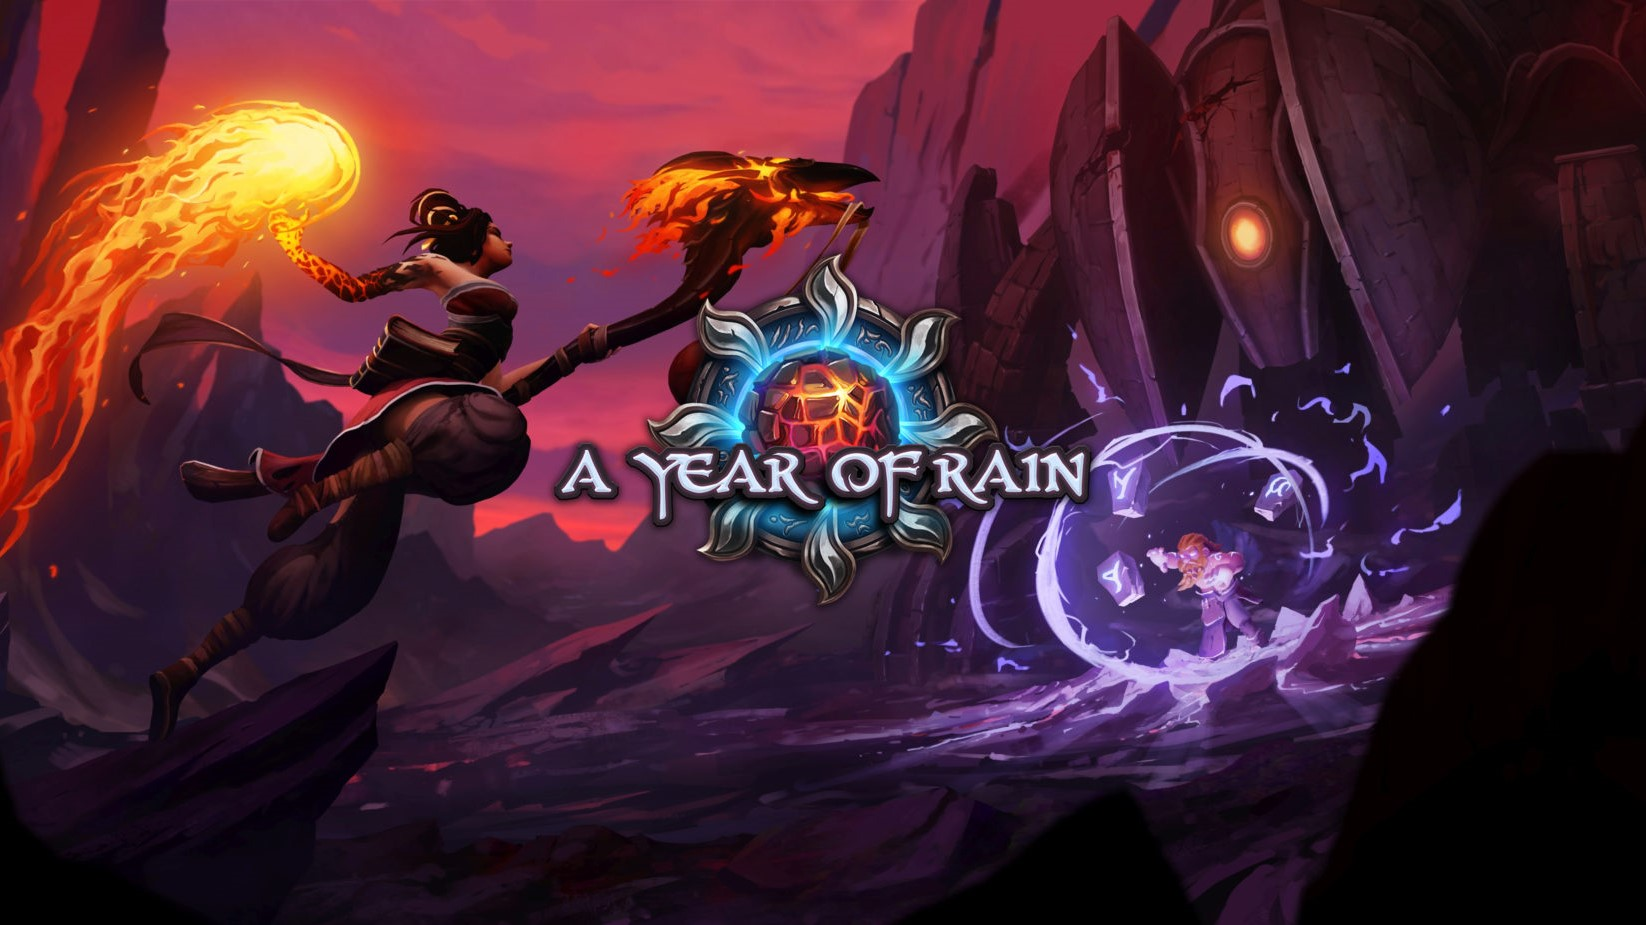 A Year Of Rain, A New Multiplayer Strategy Game From Daedalic, Has Entered Closed Beta